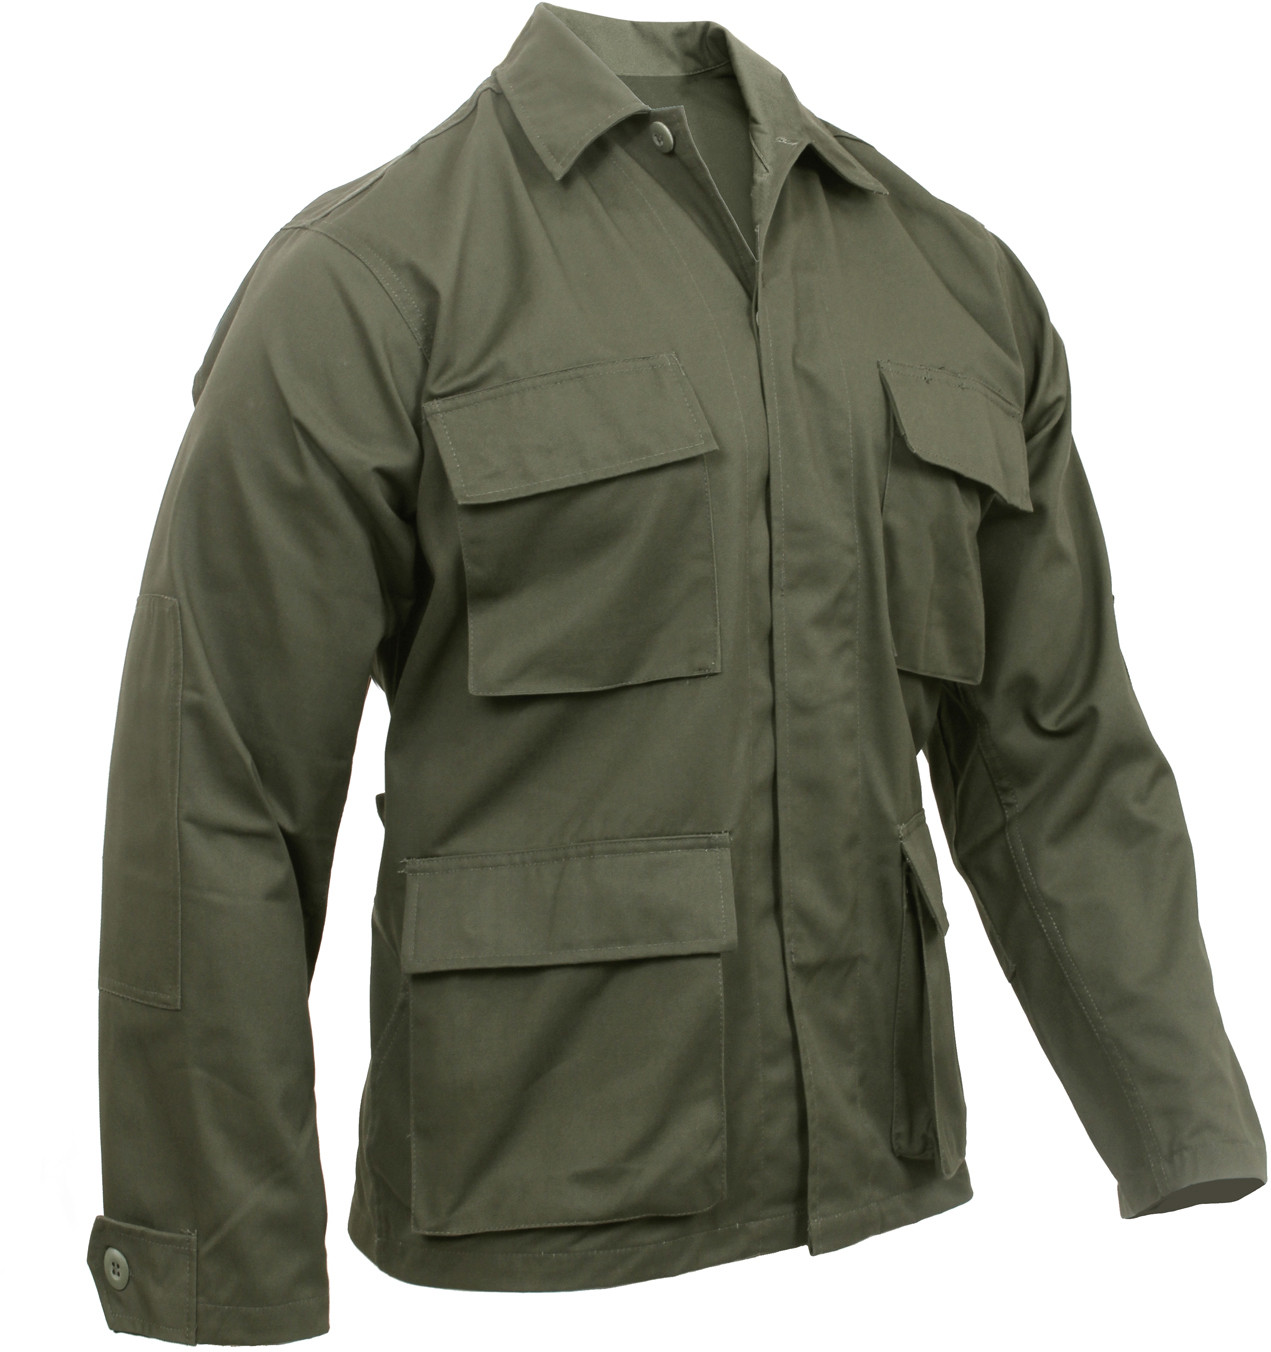 Olive Drab Military Polyester Cotton Fatigue BDU Shirt e6a5f06c1f0